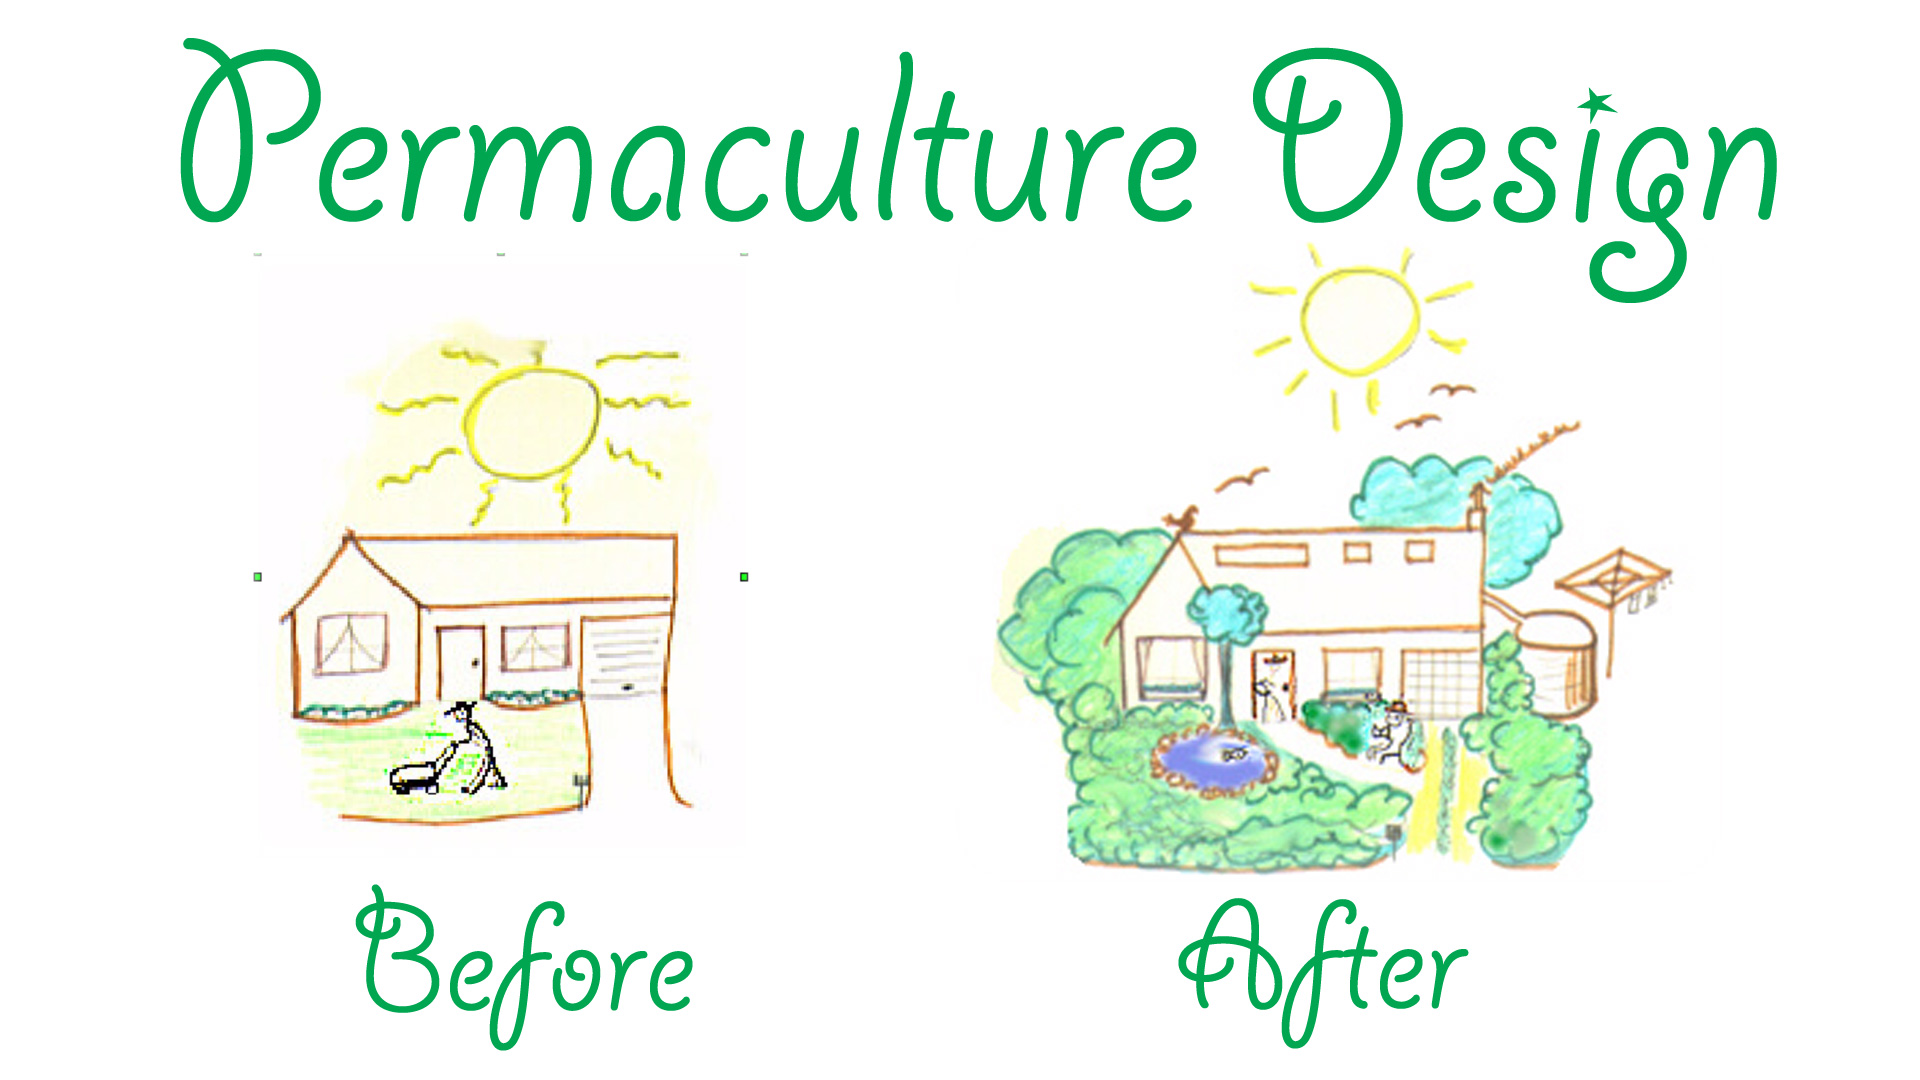 before and after permaculture design